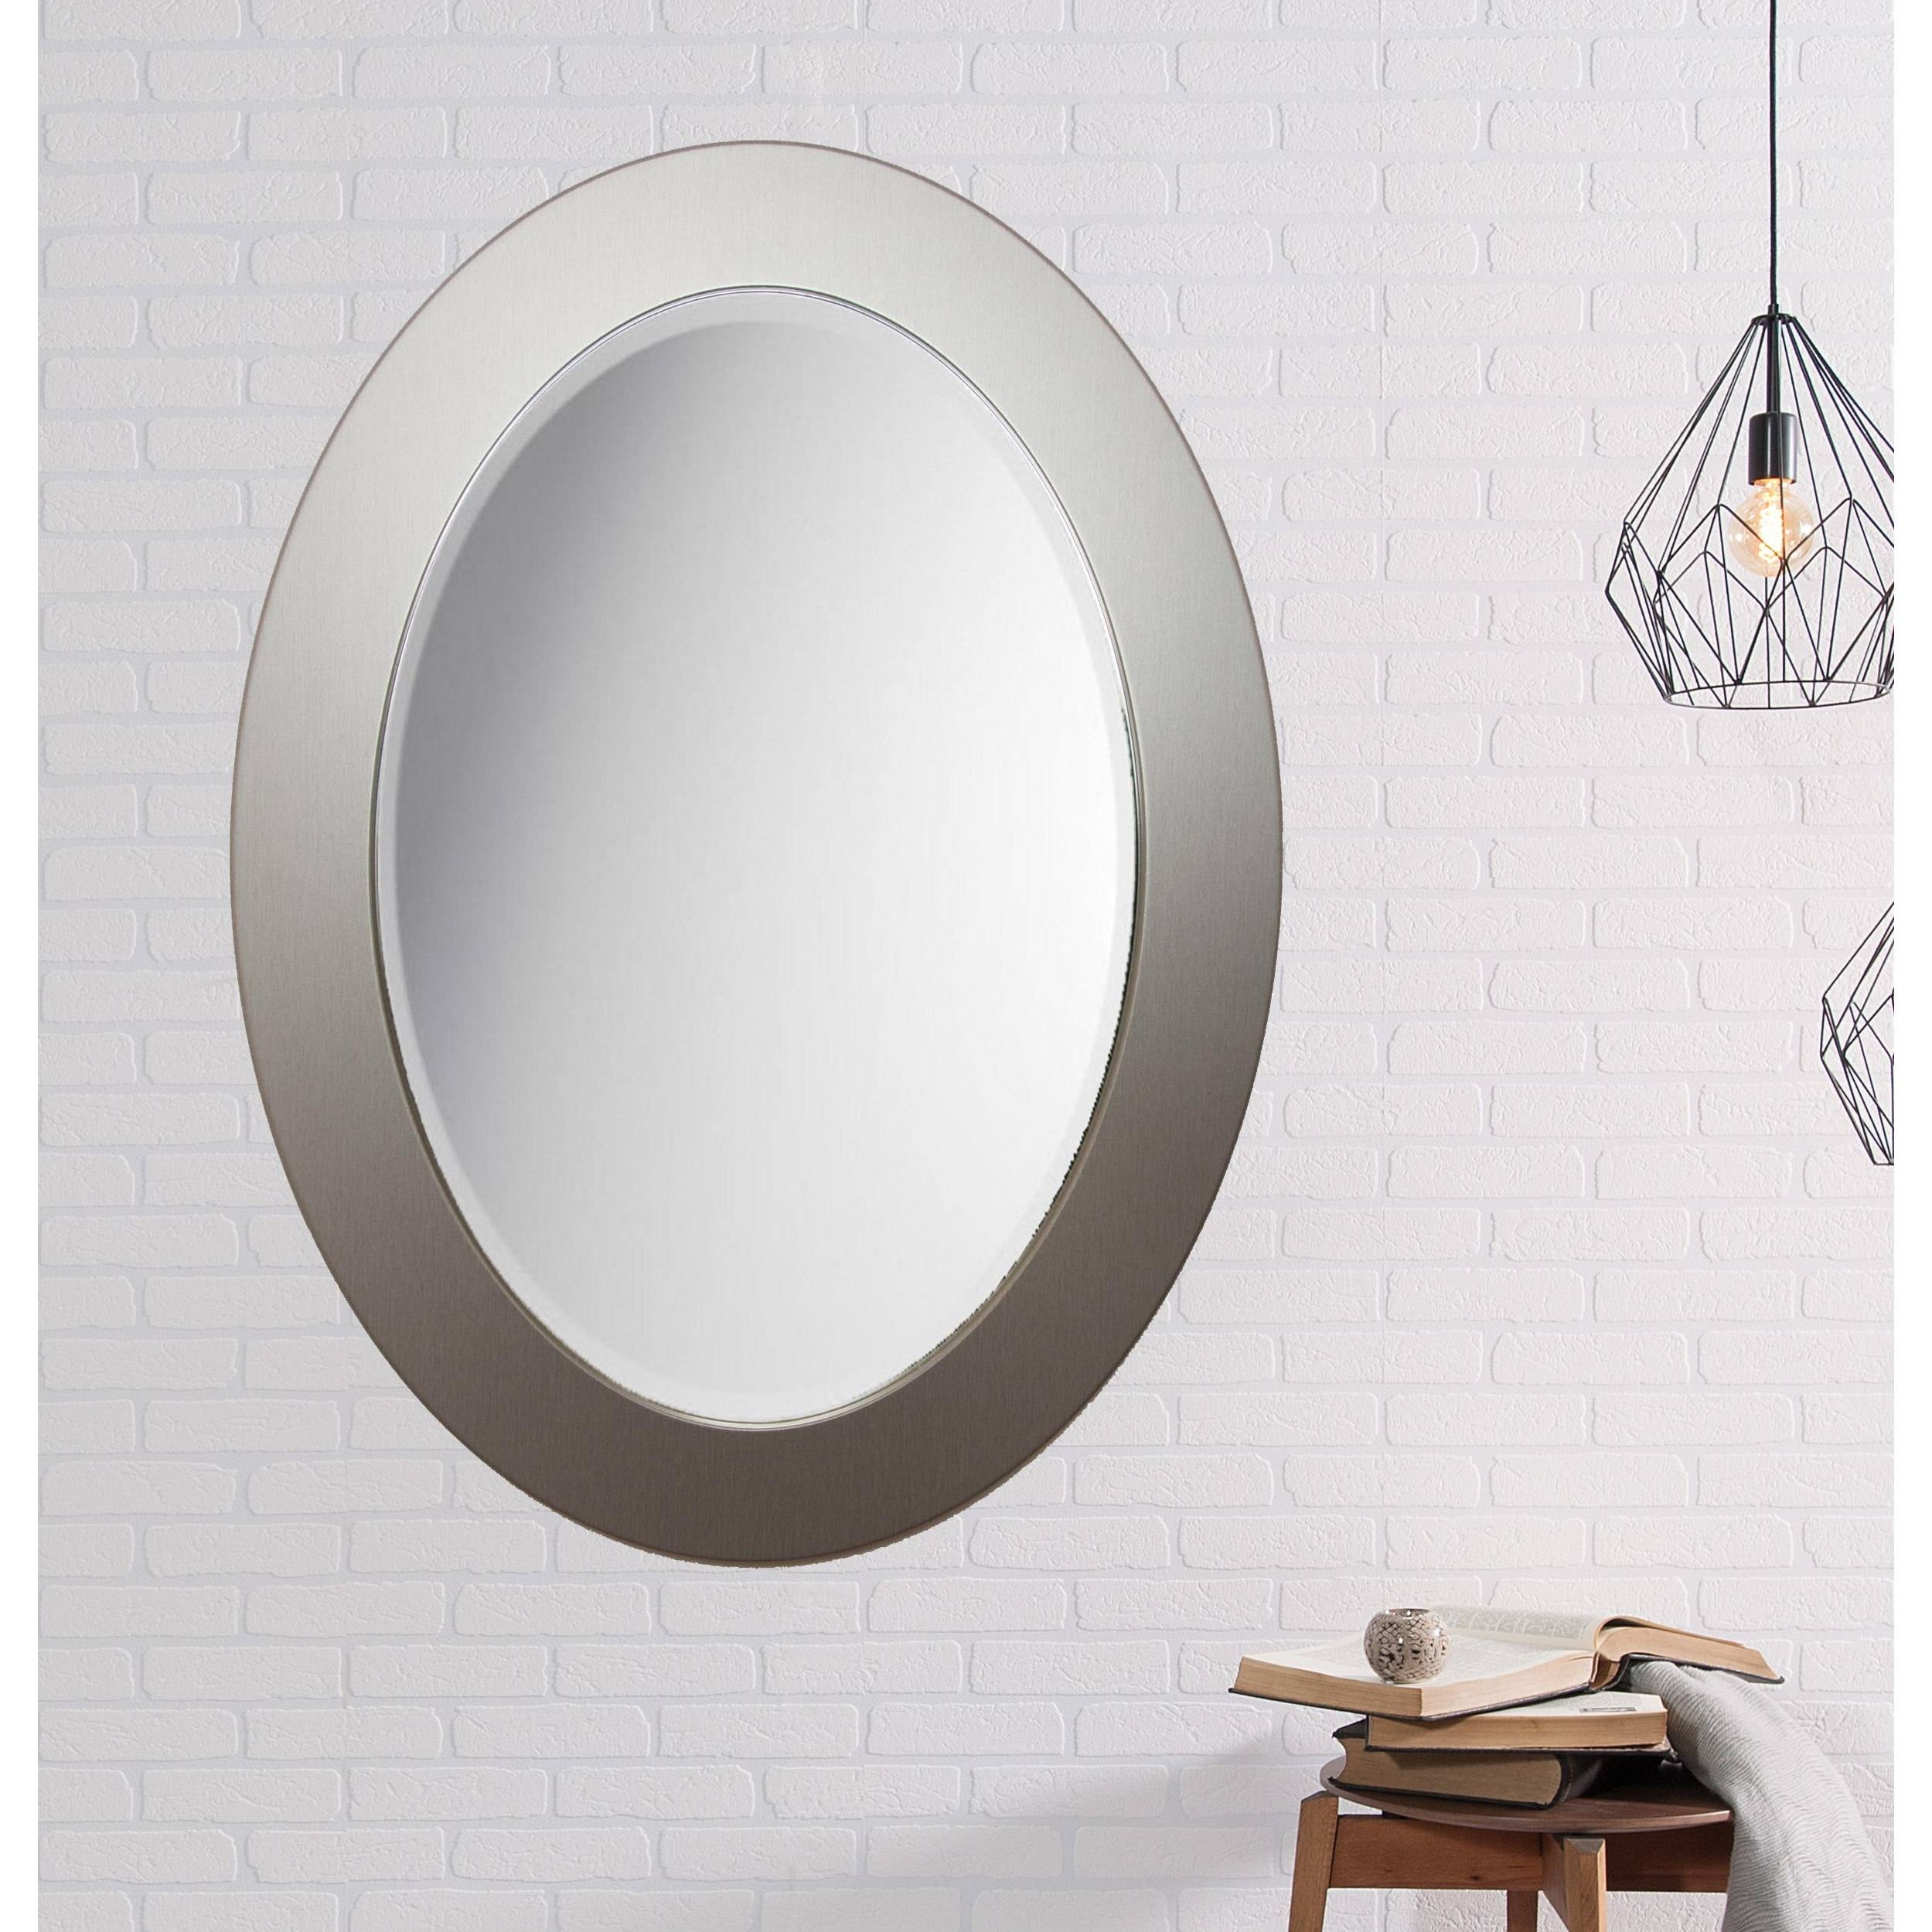 Beveled Brushed Silver Oval Wall Mirror regarding Silver Oval Wall Mirrors (Image 6 of 25)